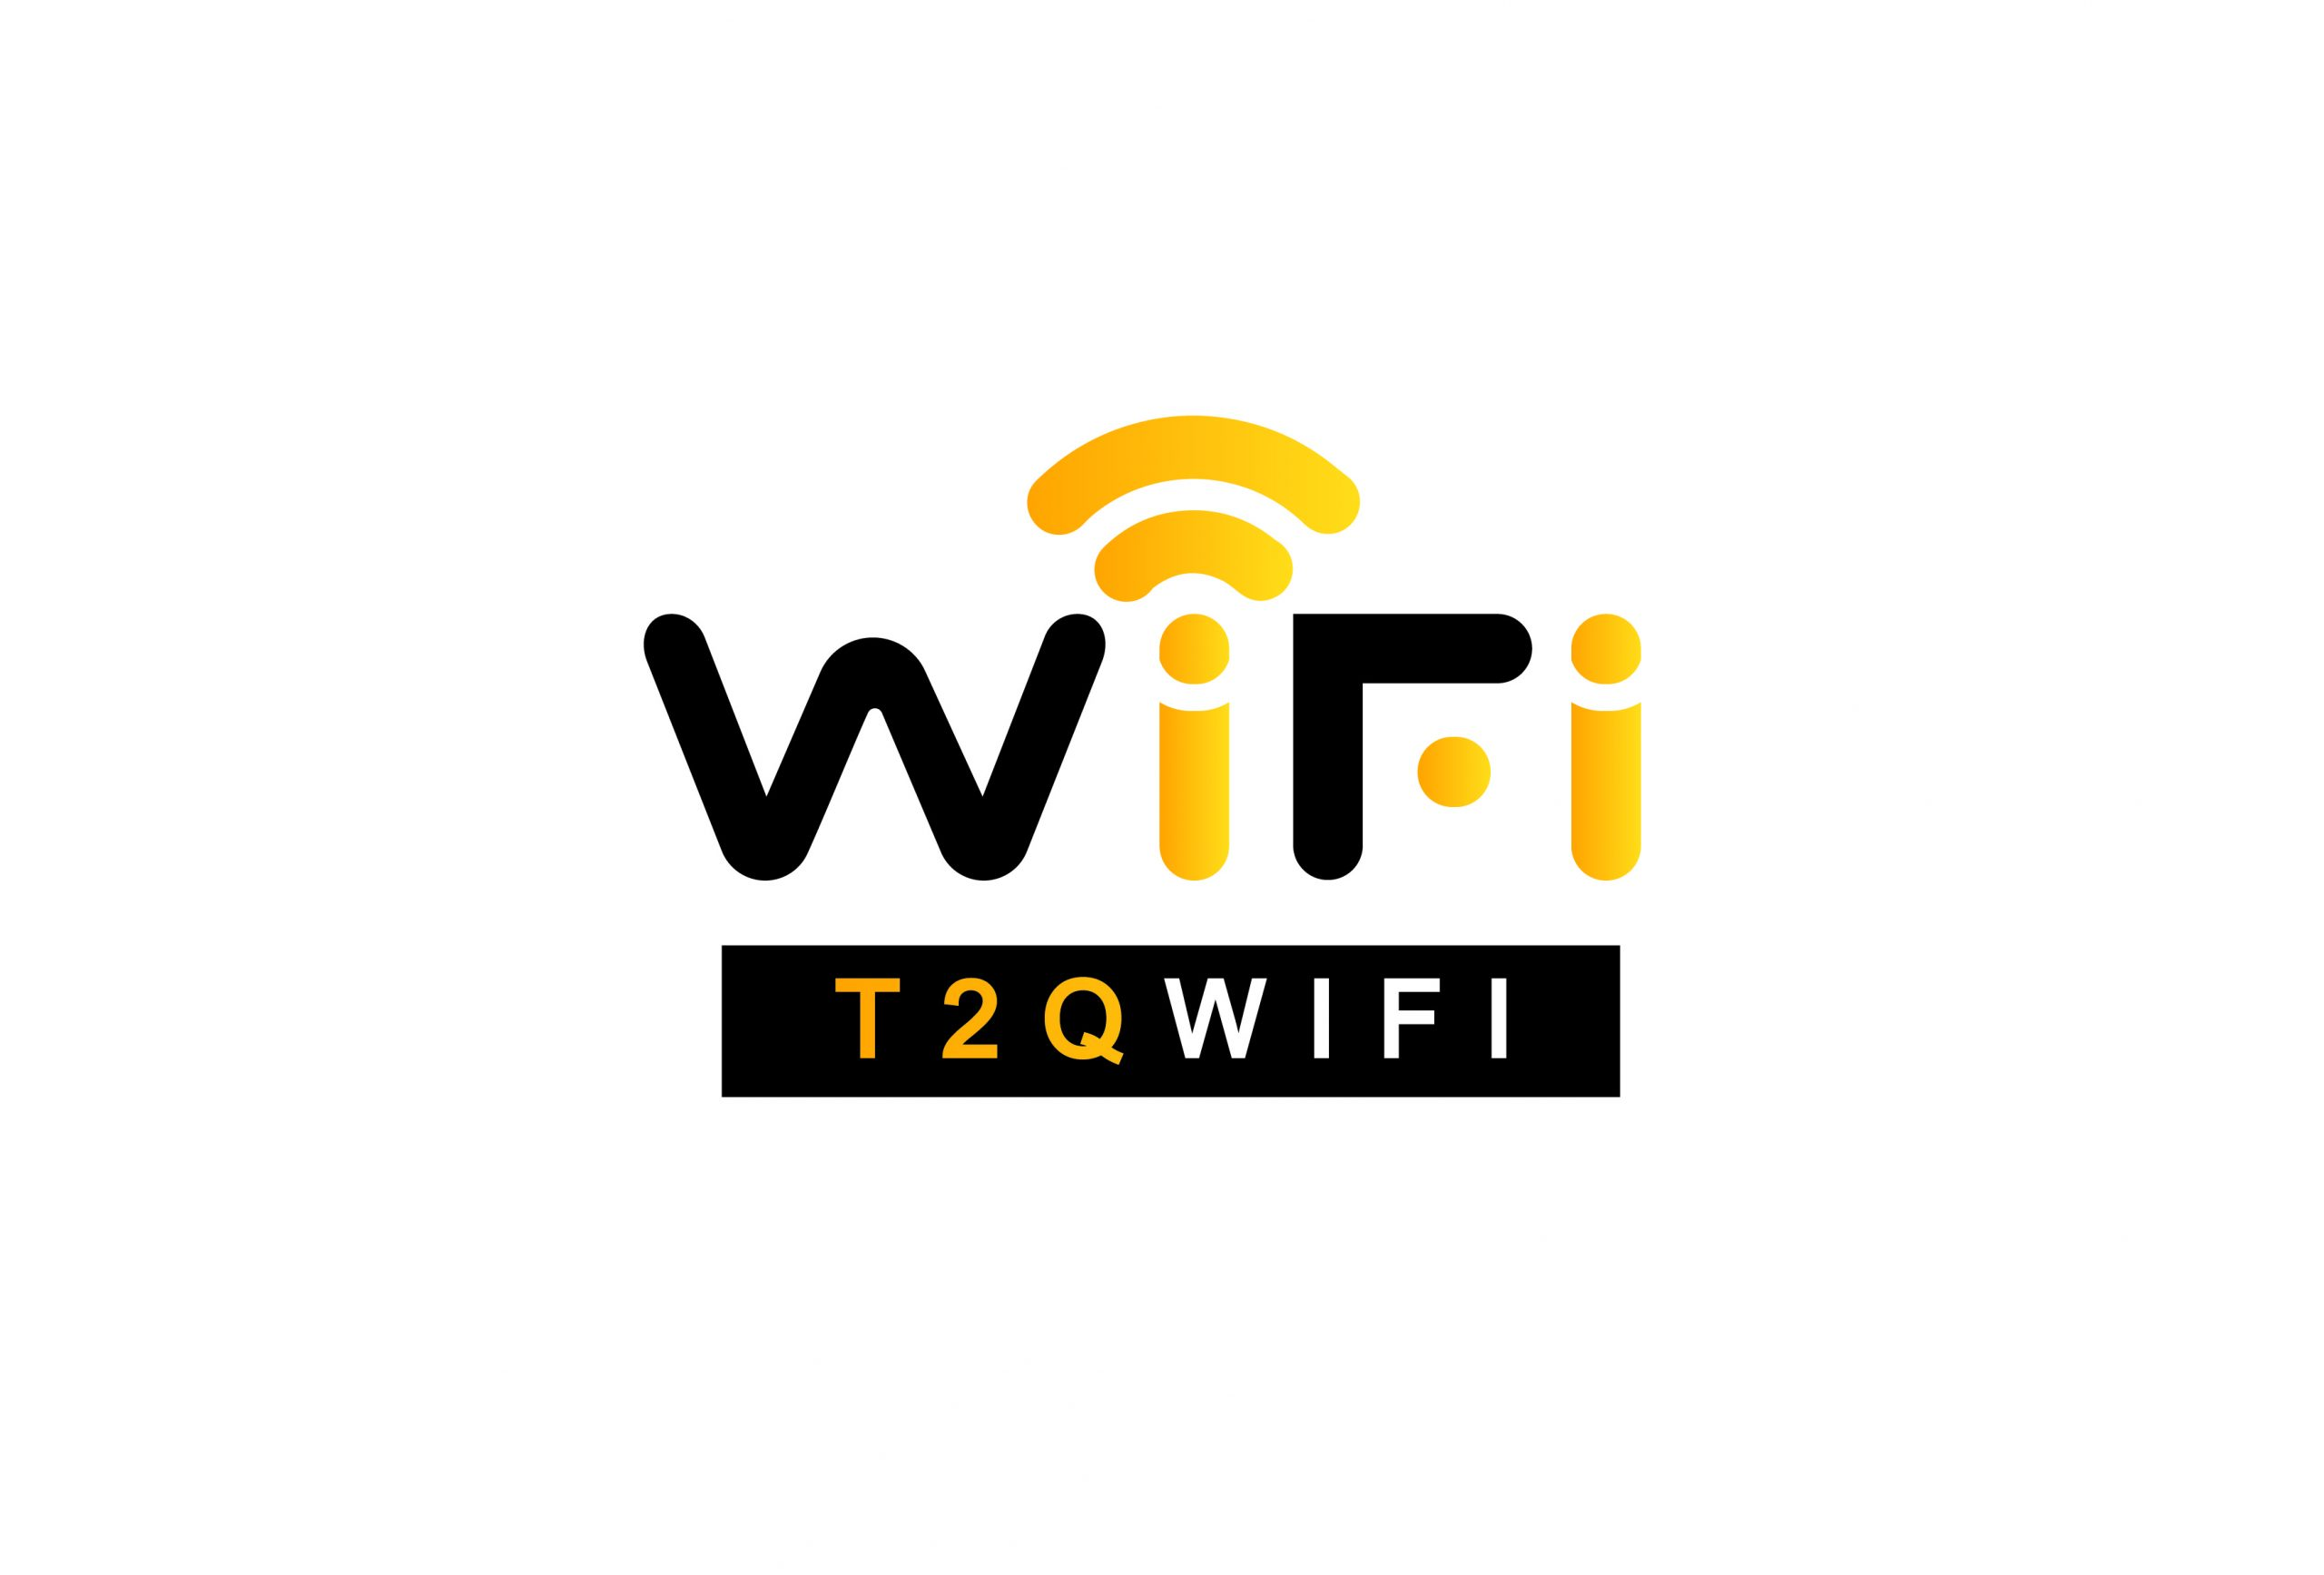 t2qwifi_ds-2cd2121g0-is1